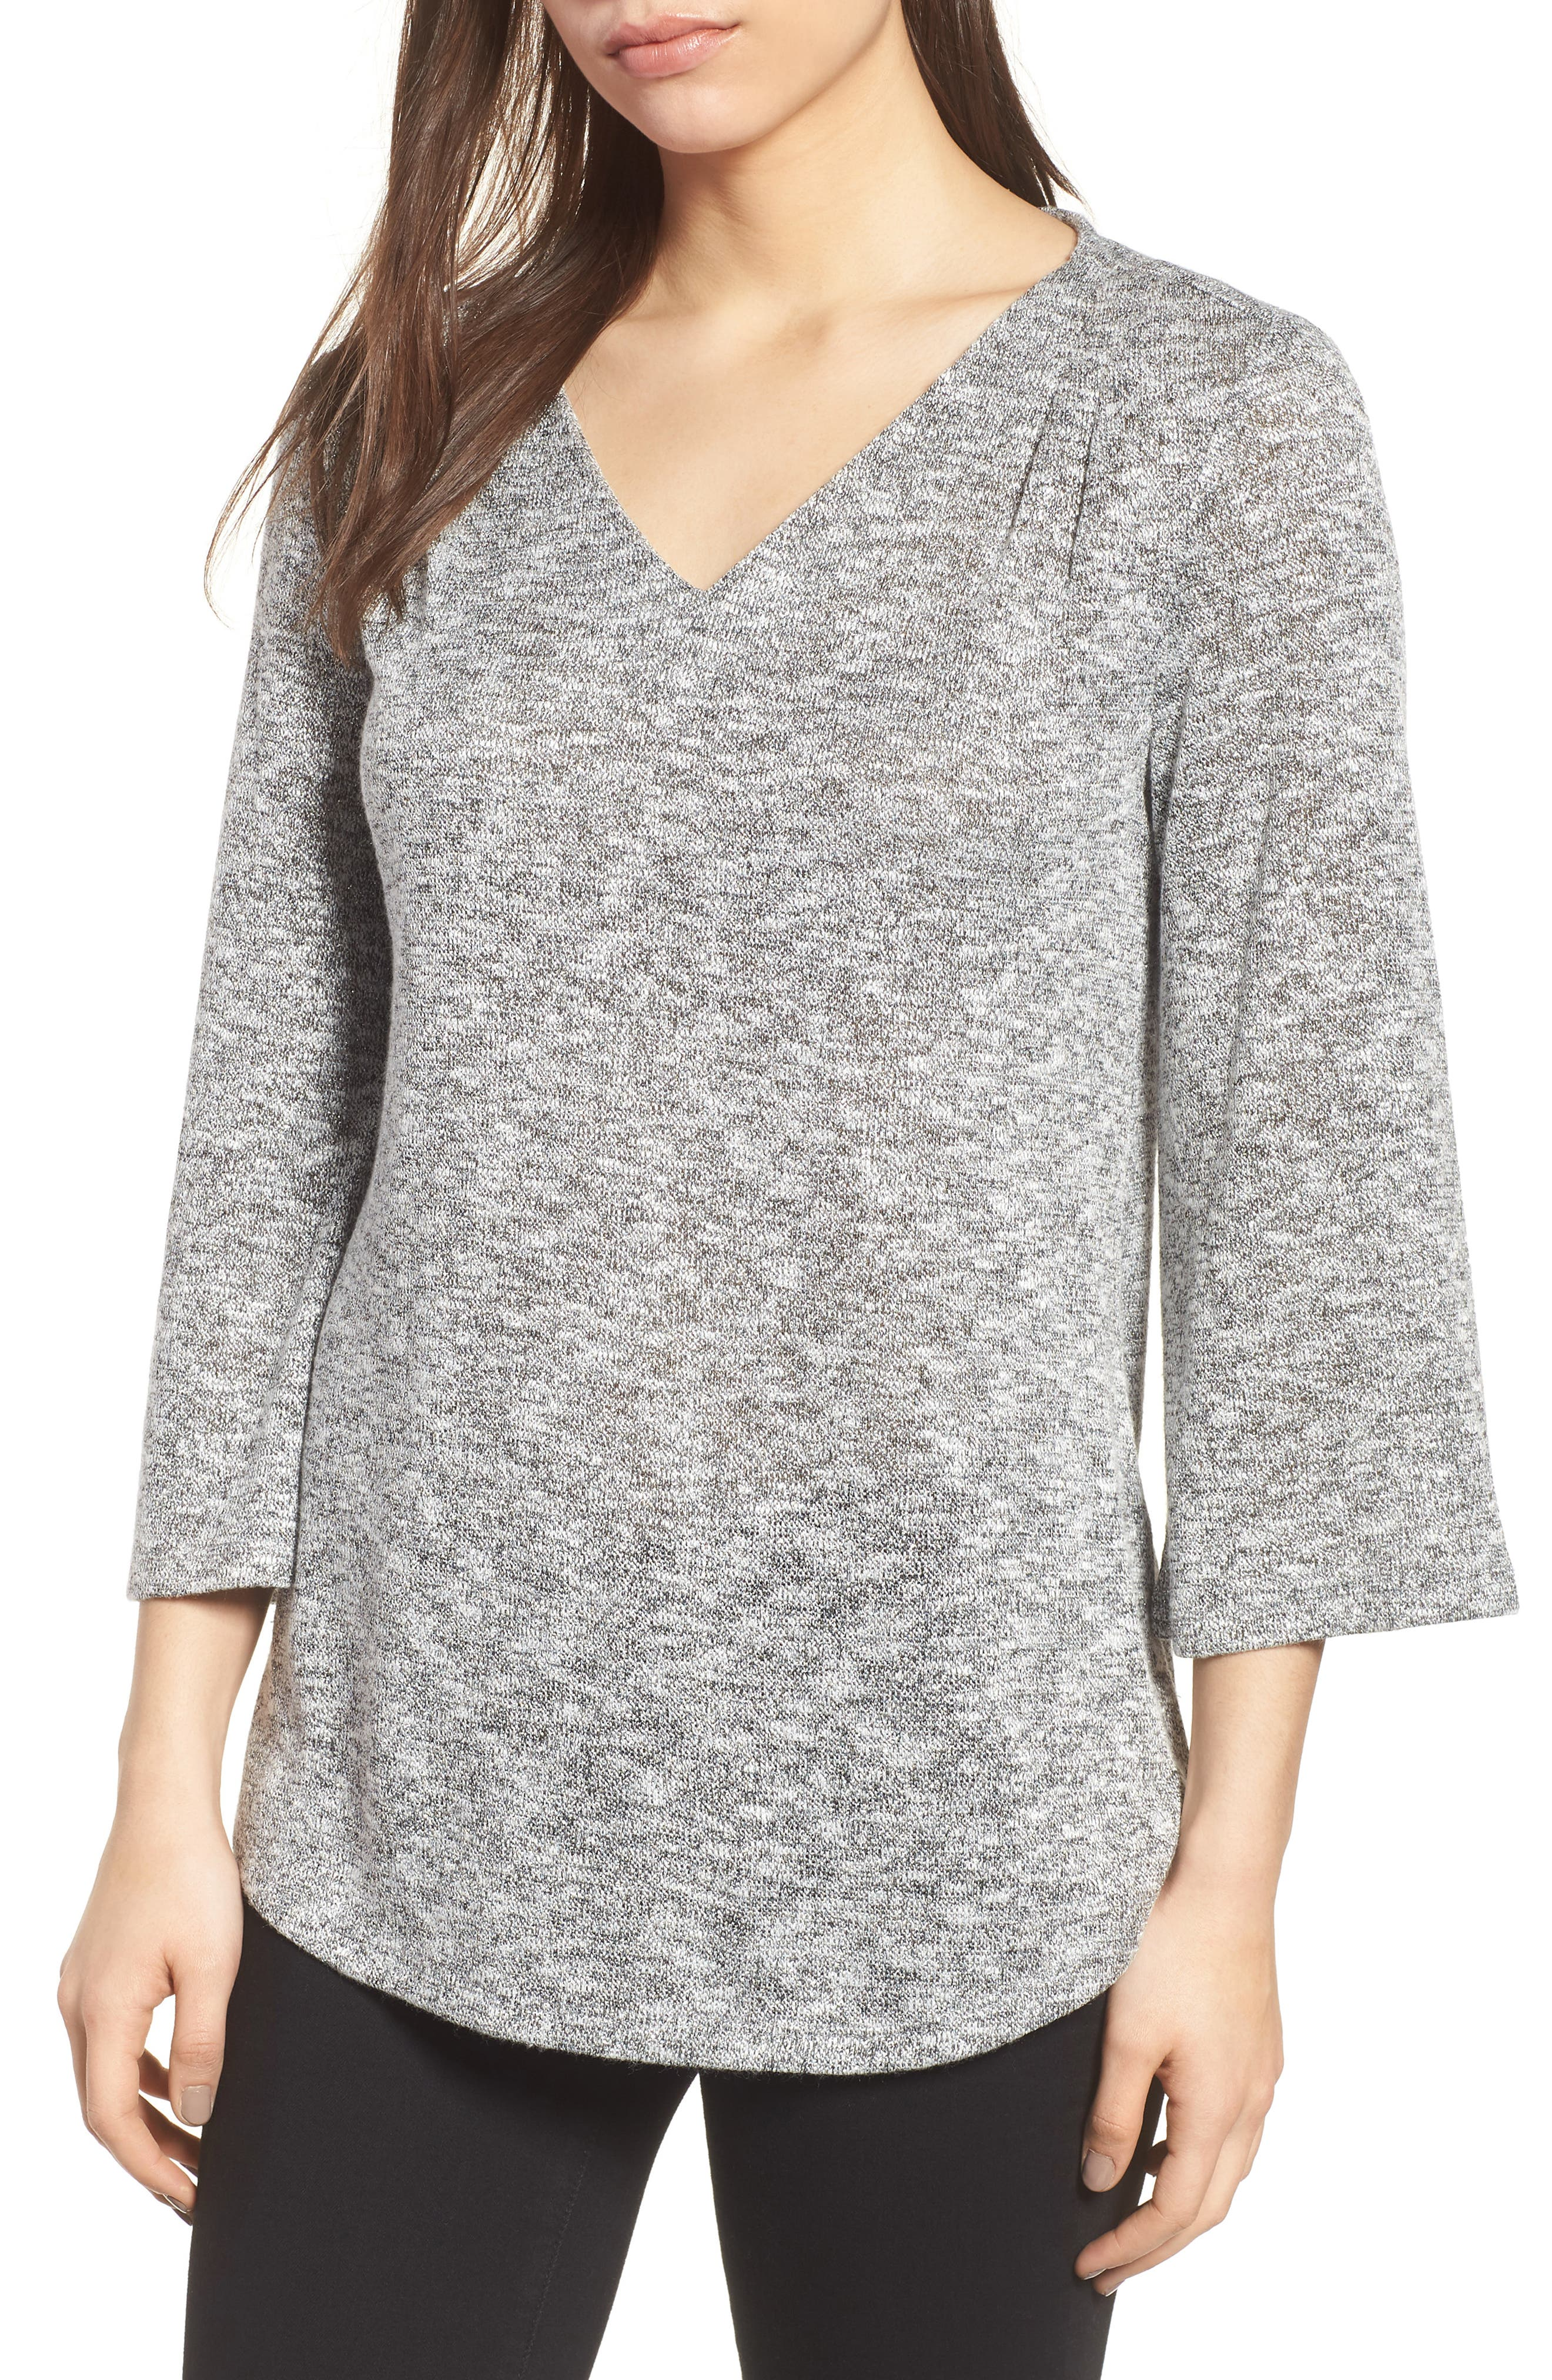 Sparkle Heathered V-Neck Top,                             Main thumbnail 1, color,                             050-Grey Heather